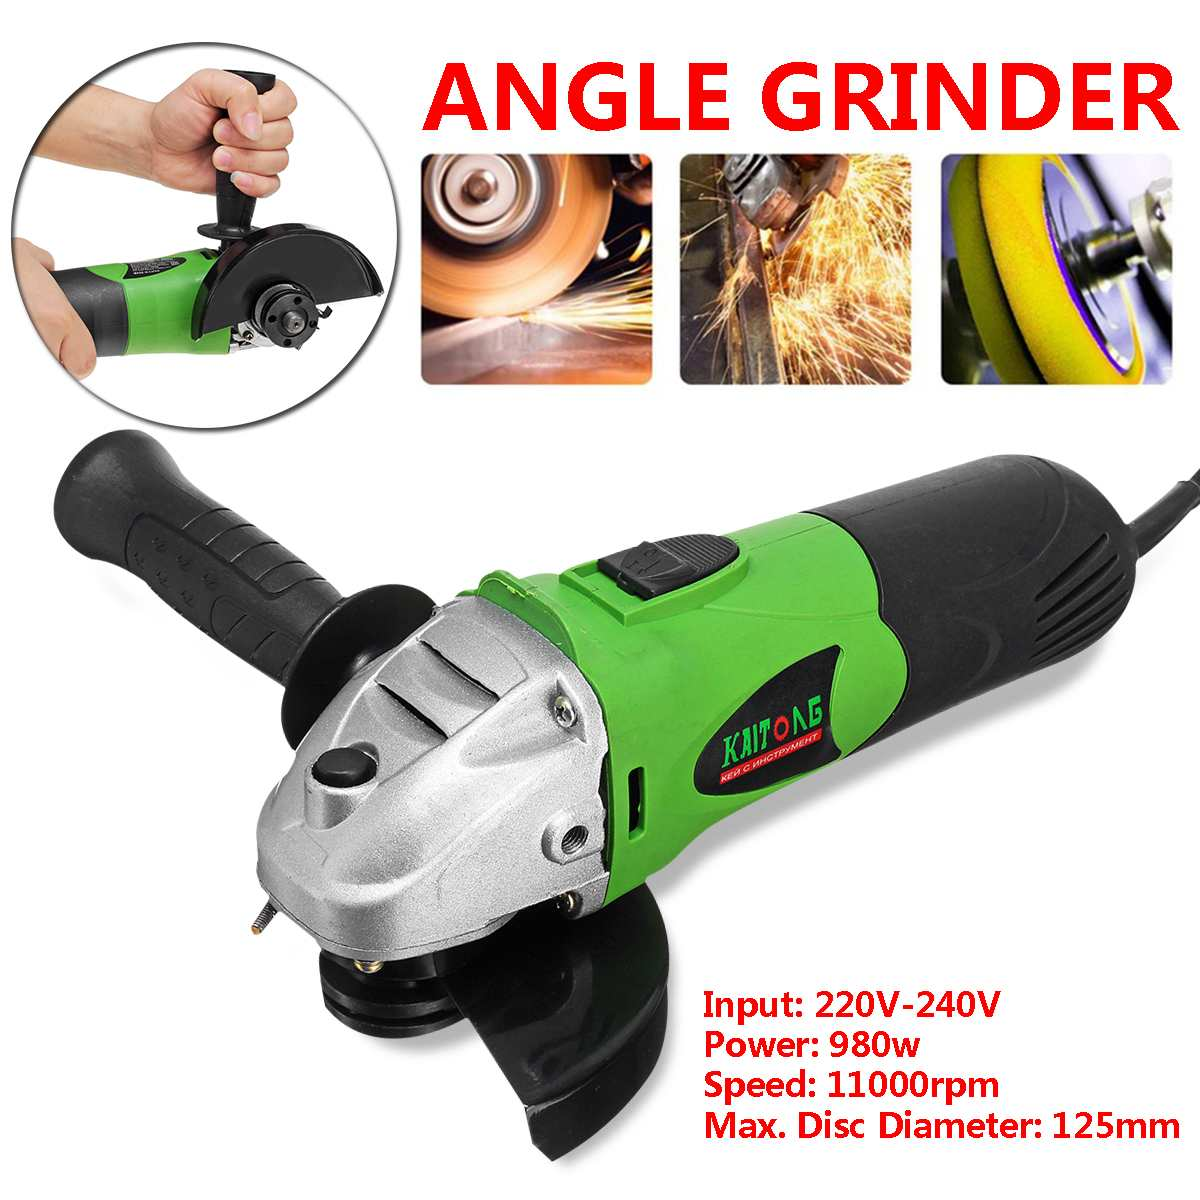 980W Powerful Electric Angle Grinder 11000RPM Grinding Machine Metal Cutting Tool 115-125mm Adjustable Anti-Slip Handle EU Plug